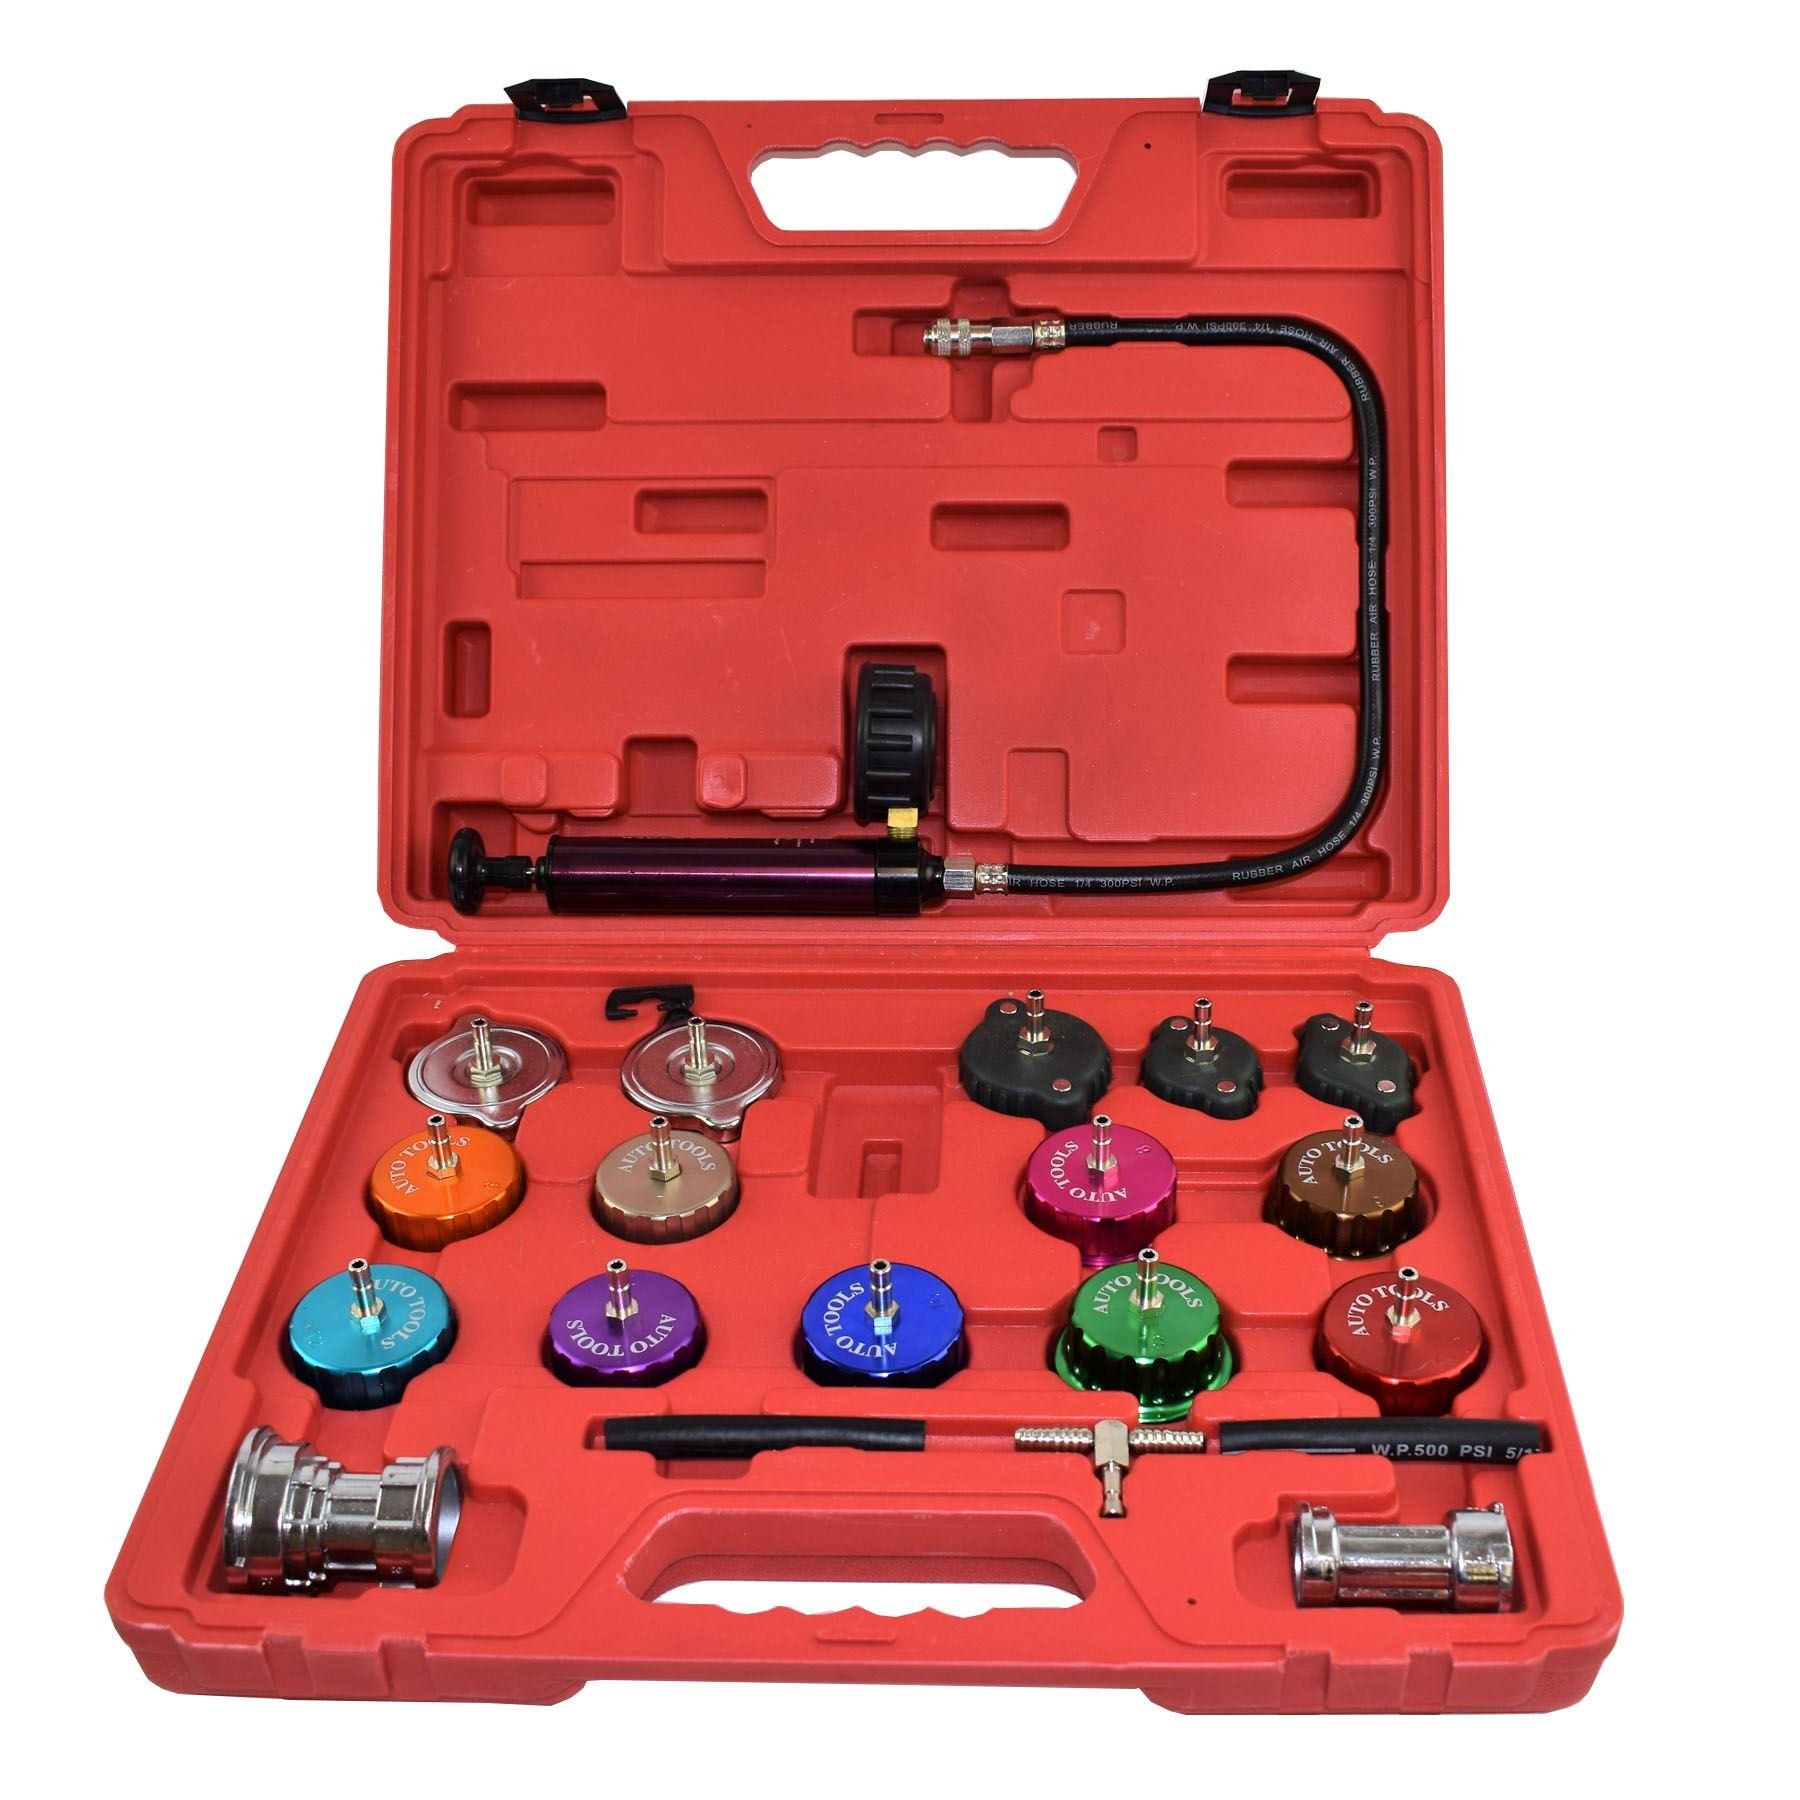 AB Tools-US Pro Master Cooling System Detector and Radiator Cap Pressure Tester Temperature Kit